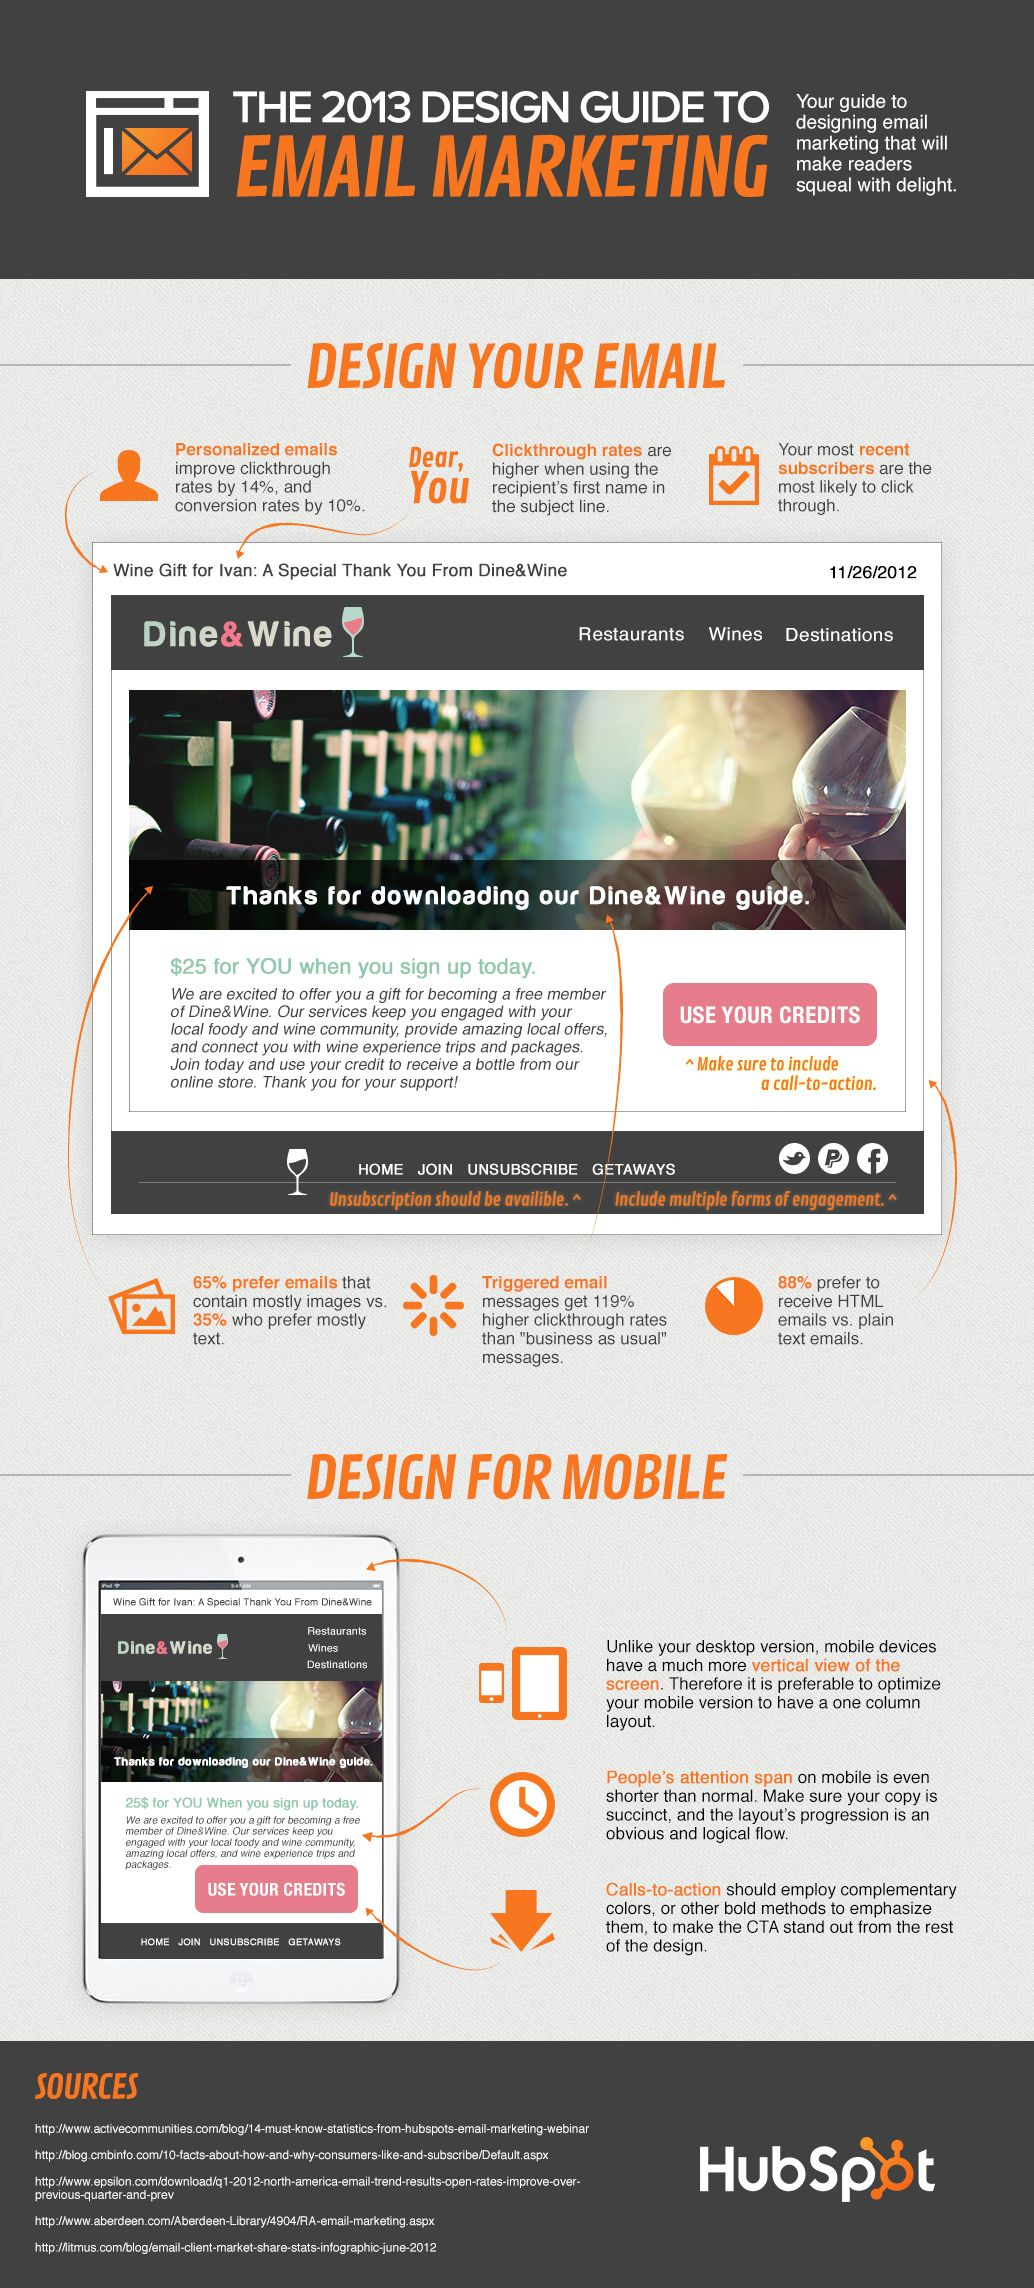 Email Marketing Design Guide For 2013 [Infographic]   e